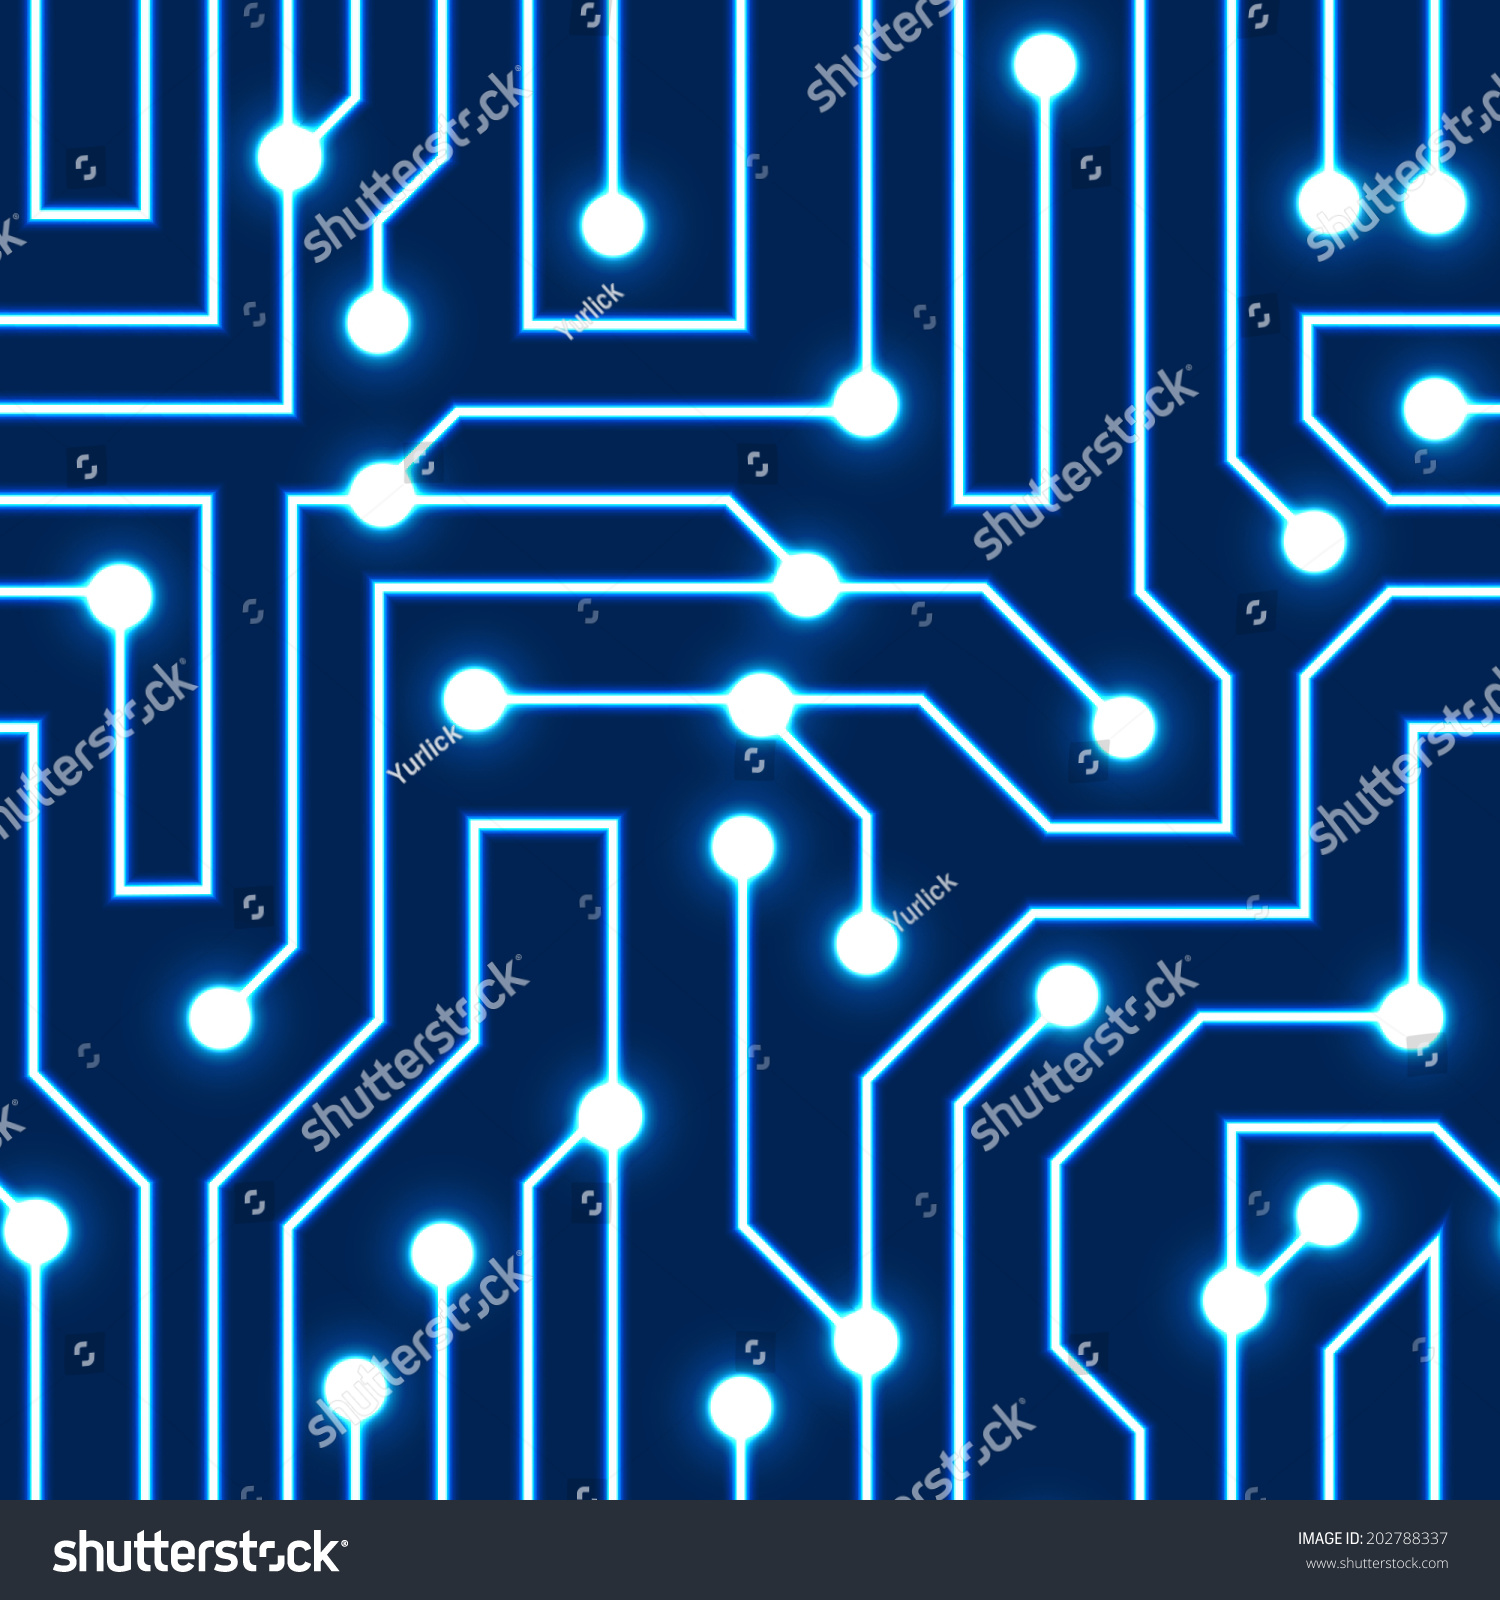 What I Know And Want To About Electricity Ashianas Blog Circuit Symbols Class Ideas 8th Grade Mindmap Galaxy Http Imageshutterstockcom Z Stock Vector Blue Board Seamless Pattern With Glowing Connectors Tileable Technology Background 202788337